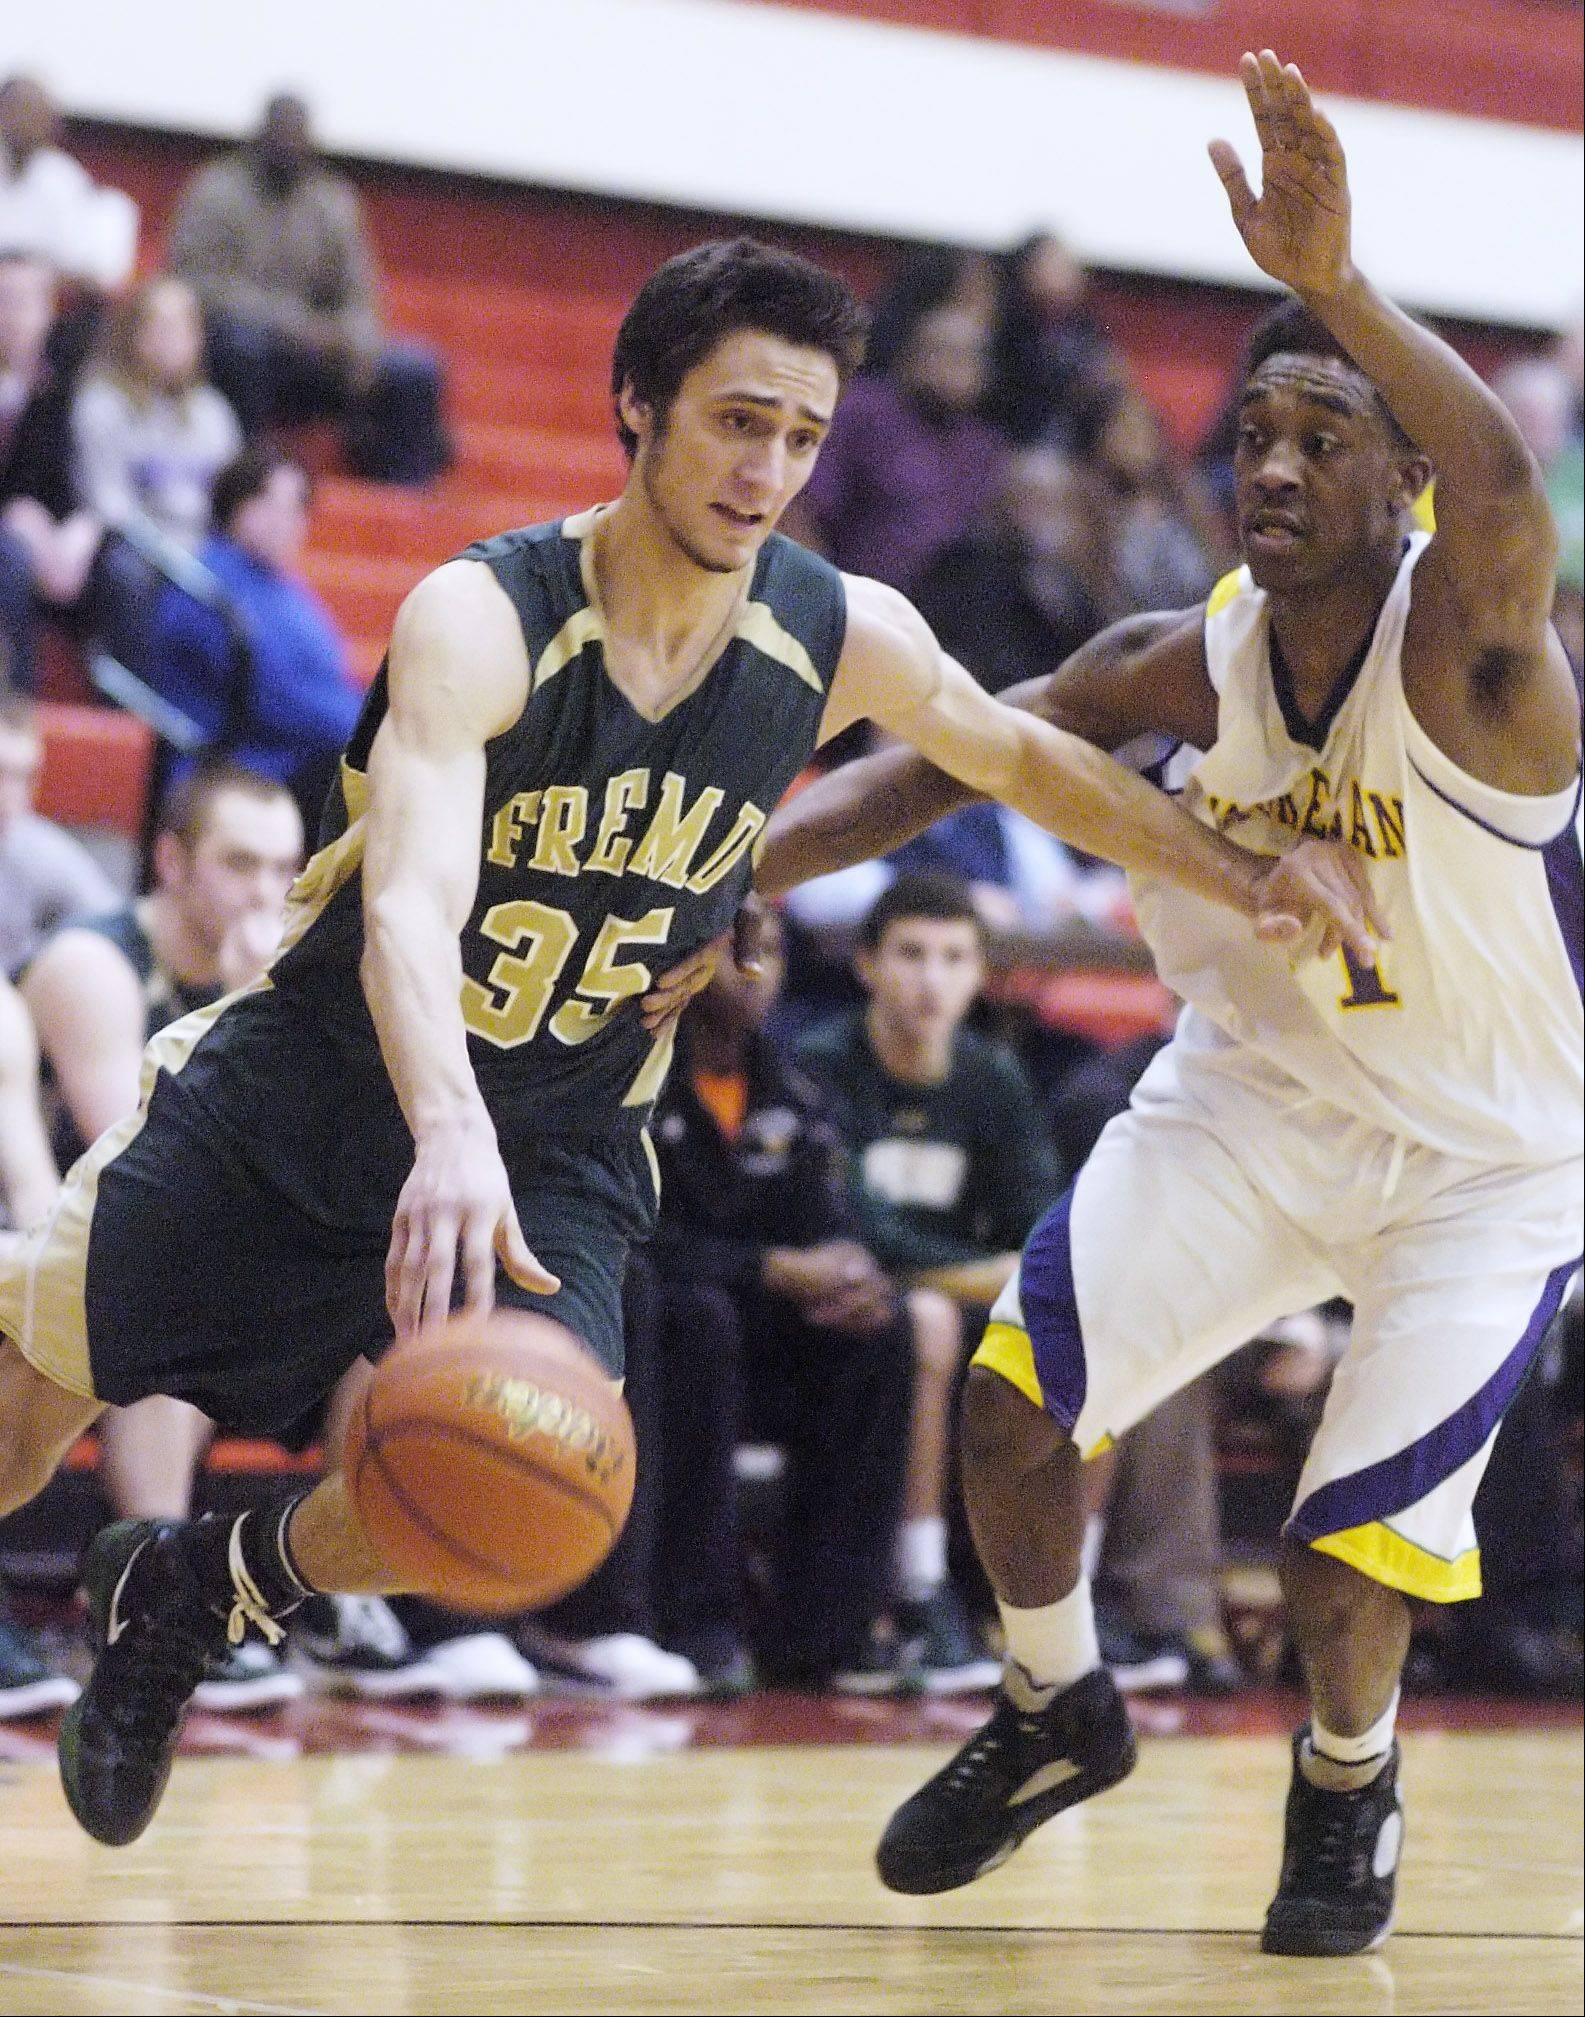 Fremd's Adam Gorecki, left, drives on Waukegan defender DeVonte Taylor.